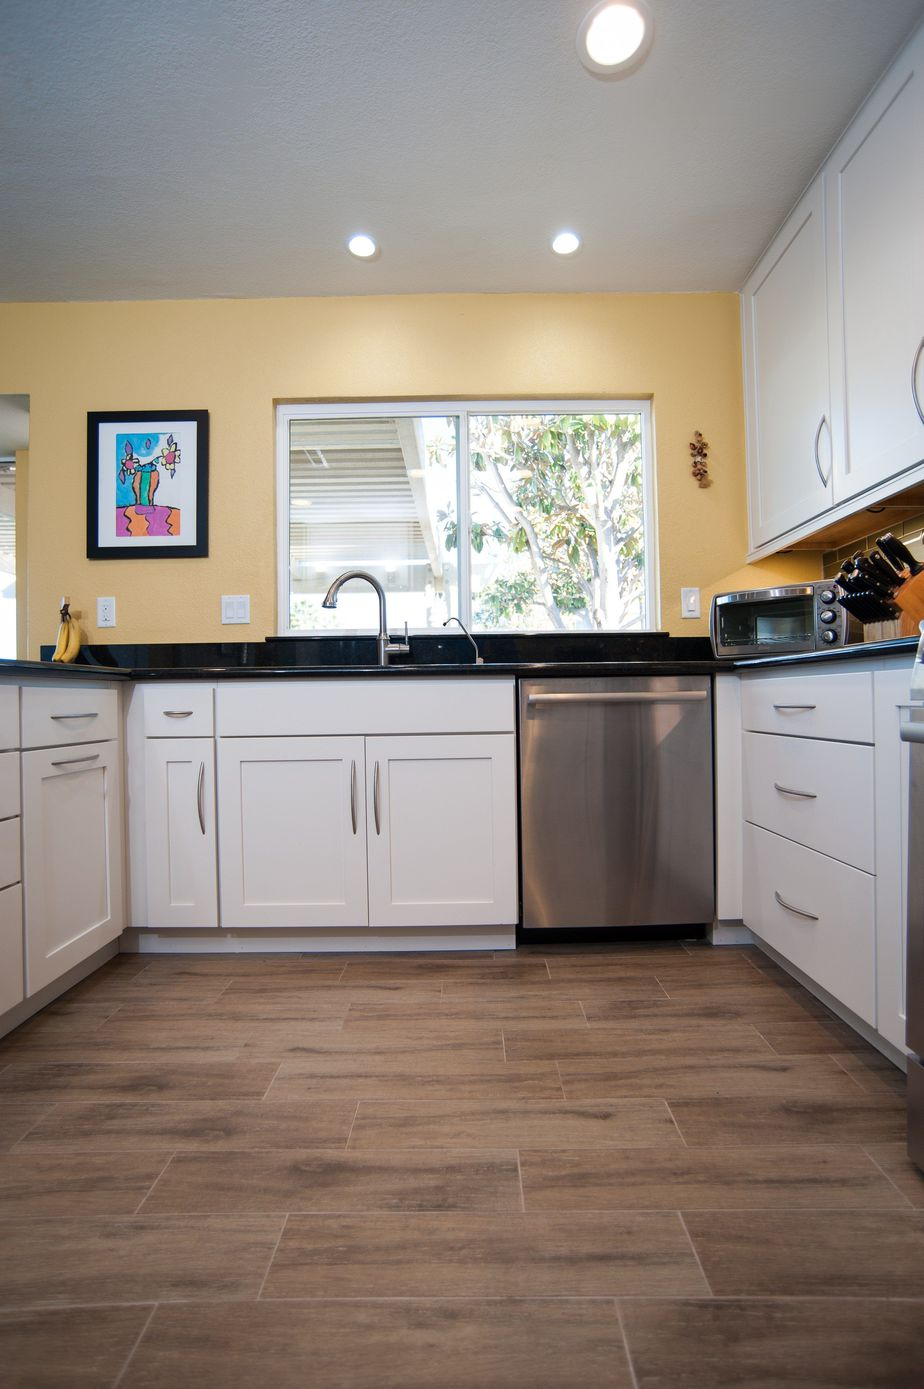 kitchen remodel featuring a tile floor that looks like wood against white starmark cabinetry and yellow painted walls